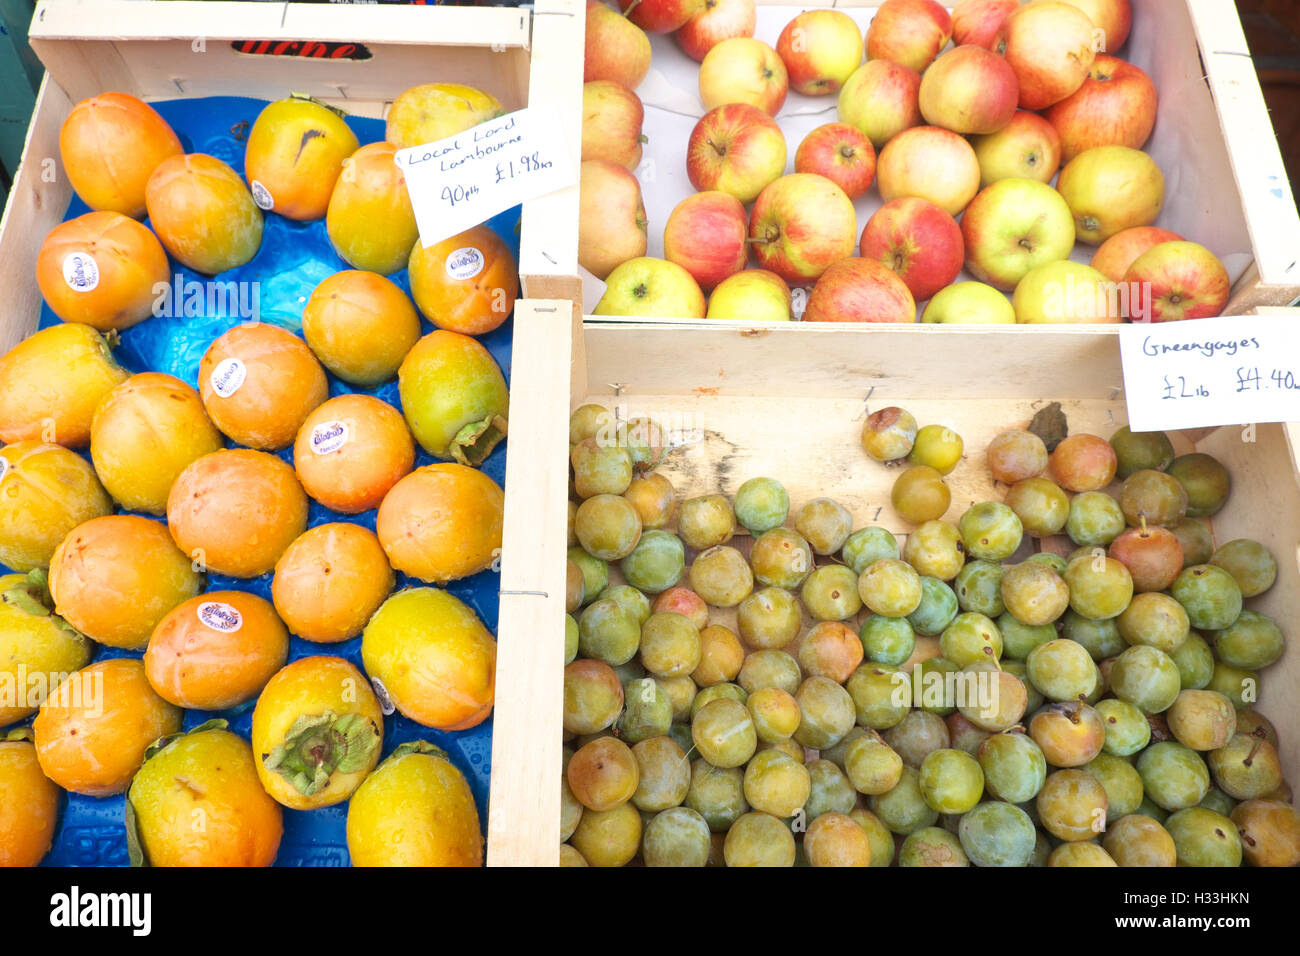 Greengrocers display showing persimmon fruit on left, greengages lower right and apples top right - UK - Stock Image